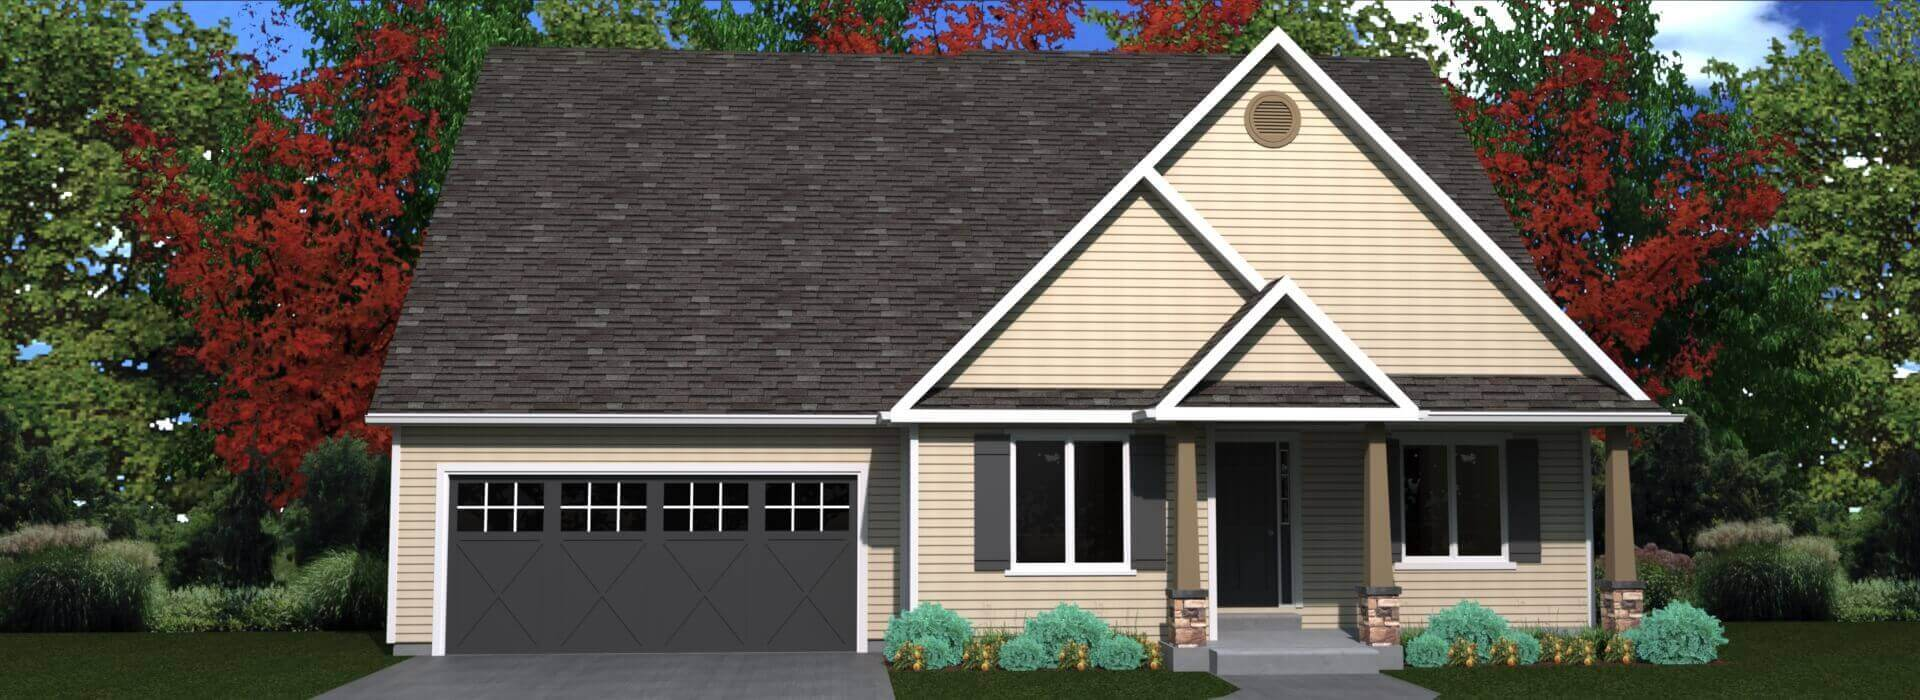 Exterior house look